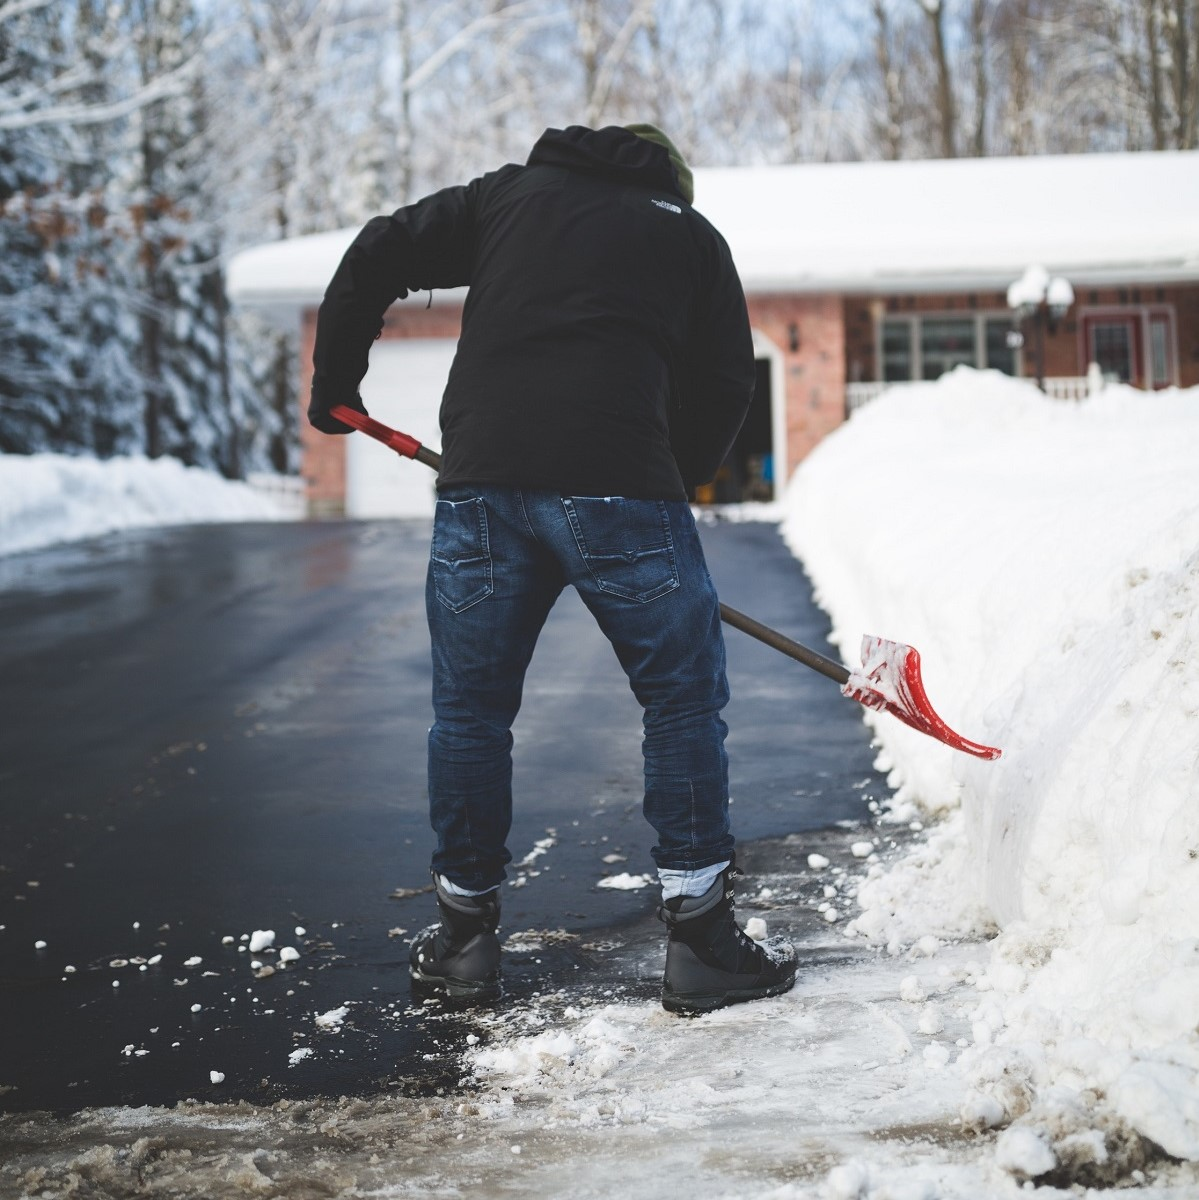 how to shovel snow, shoveling injury, shovel snow, winter injury, physical therapy mankato, optivus physical therapy